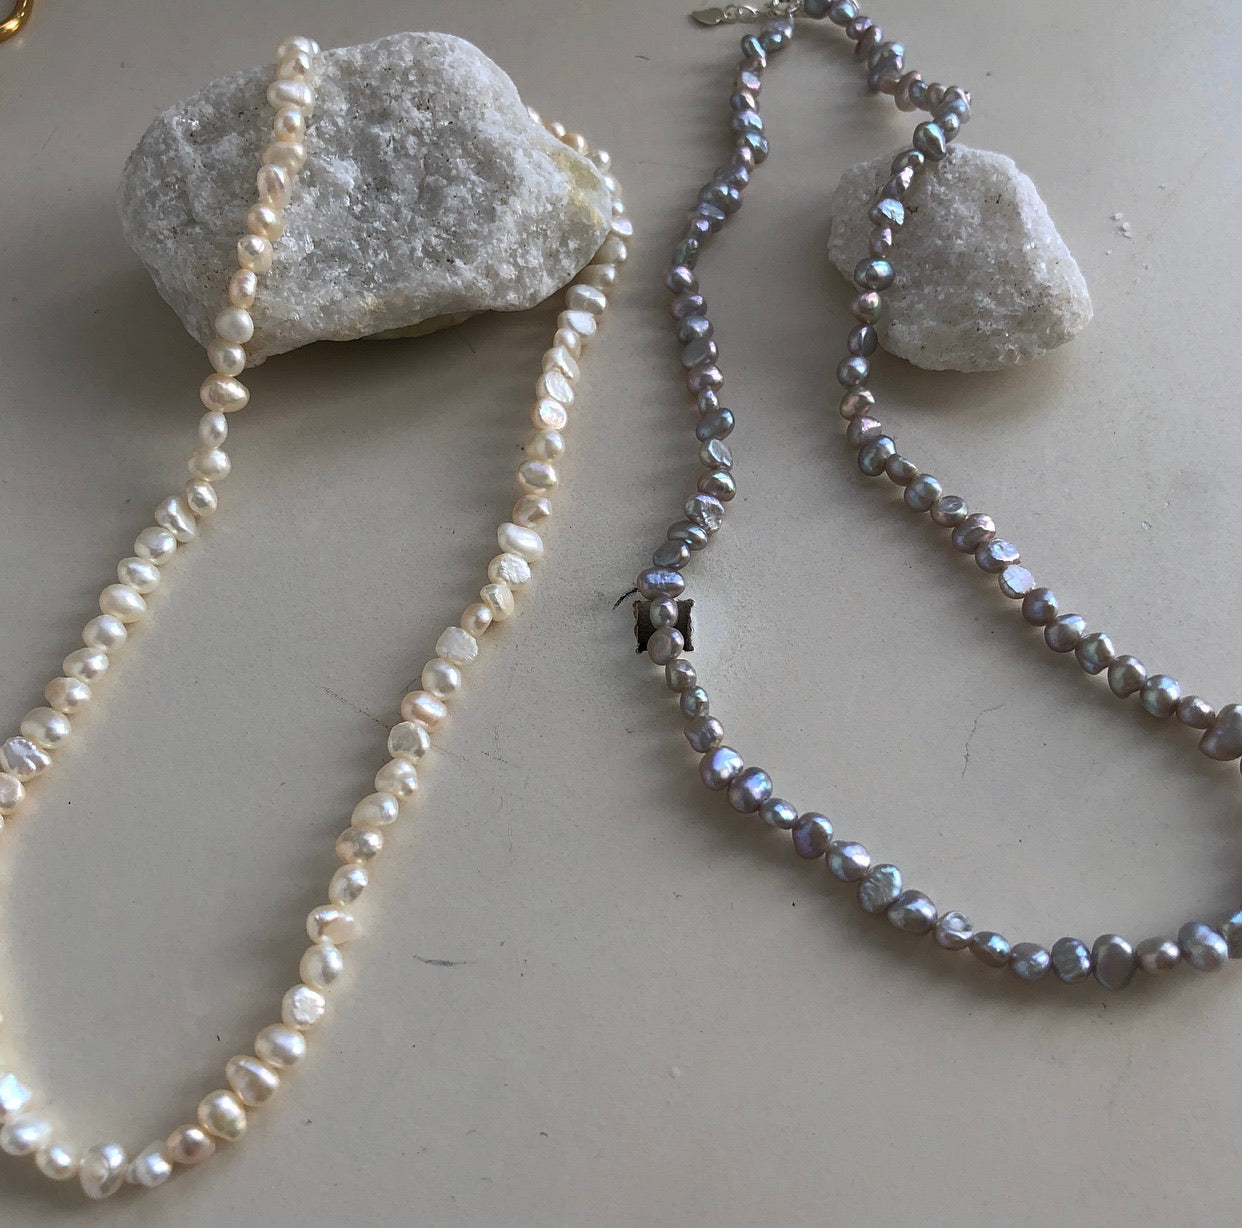 Positano Pearl Necklace